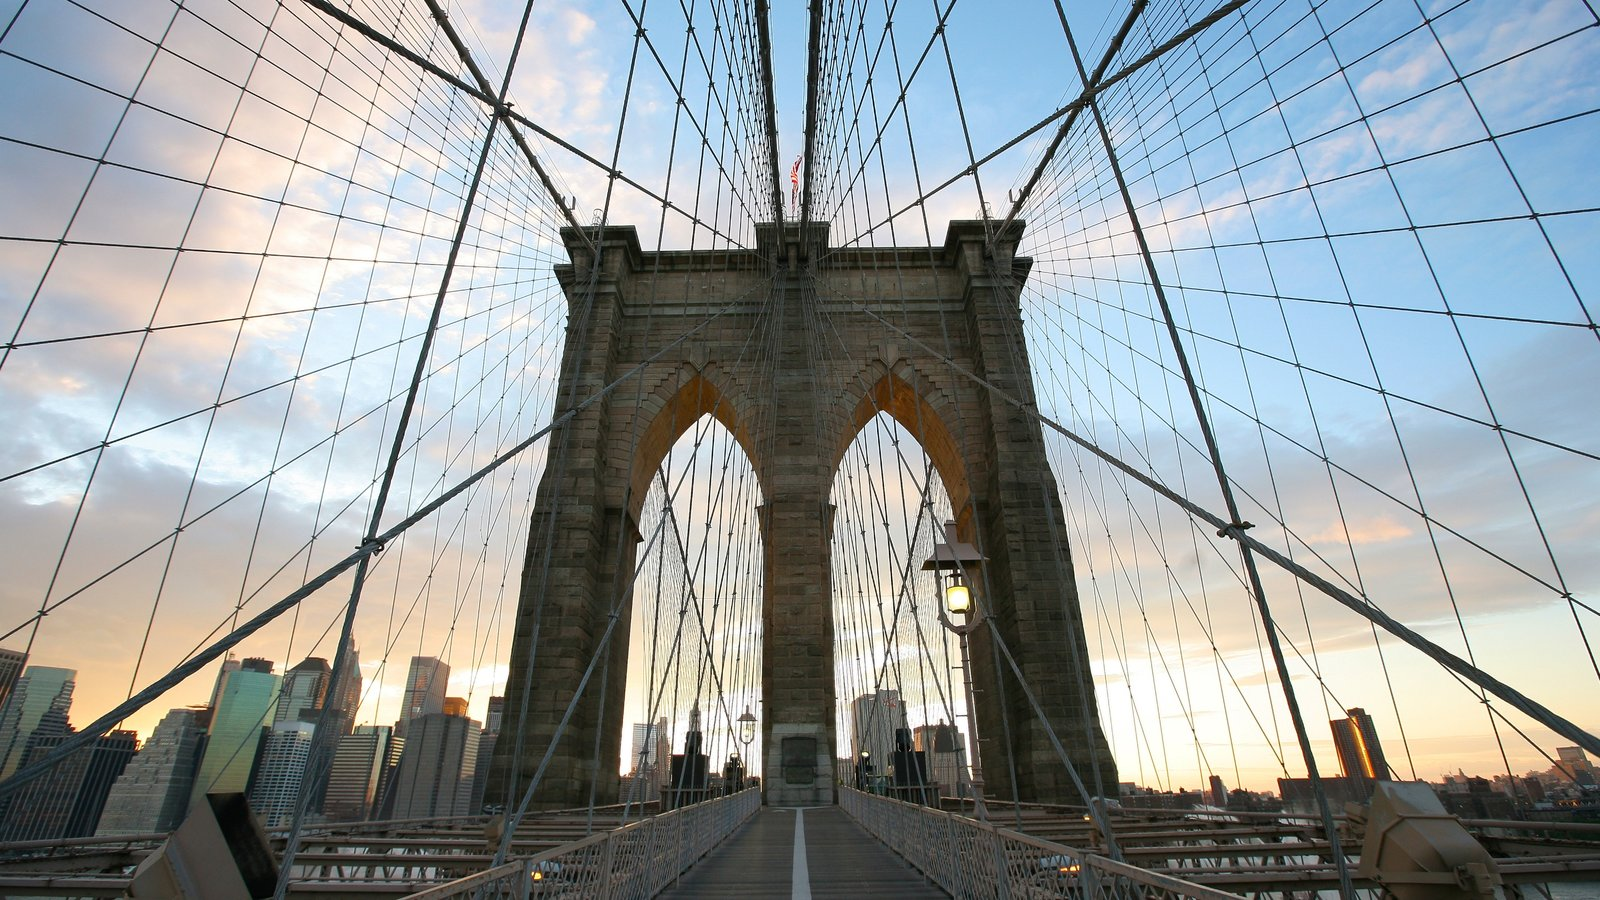 Historical pictures view images of brooklyn bridge brooklyn bridge which includes heritage architecture a city and a bridge malvernweather Gallery